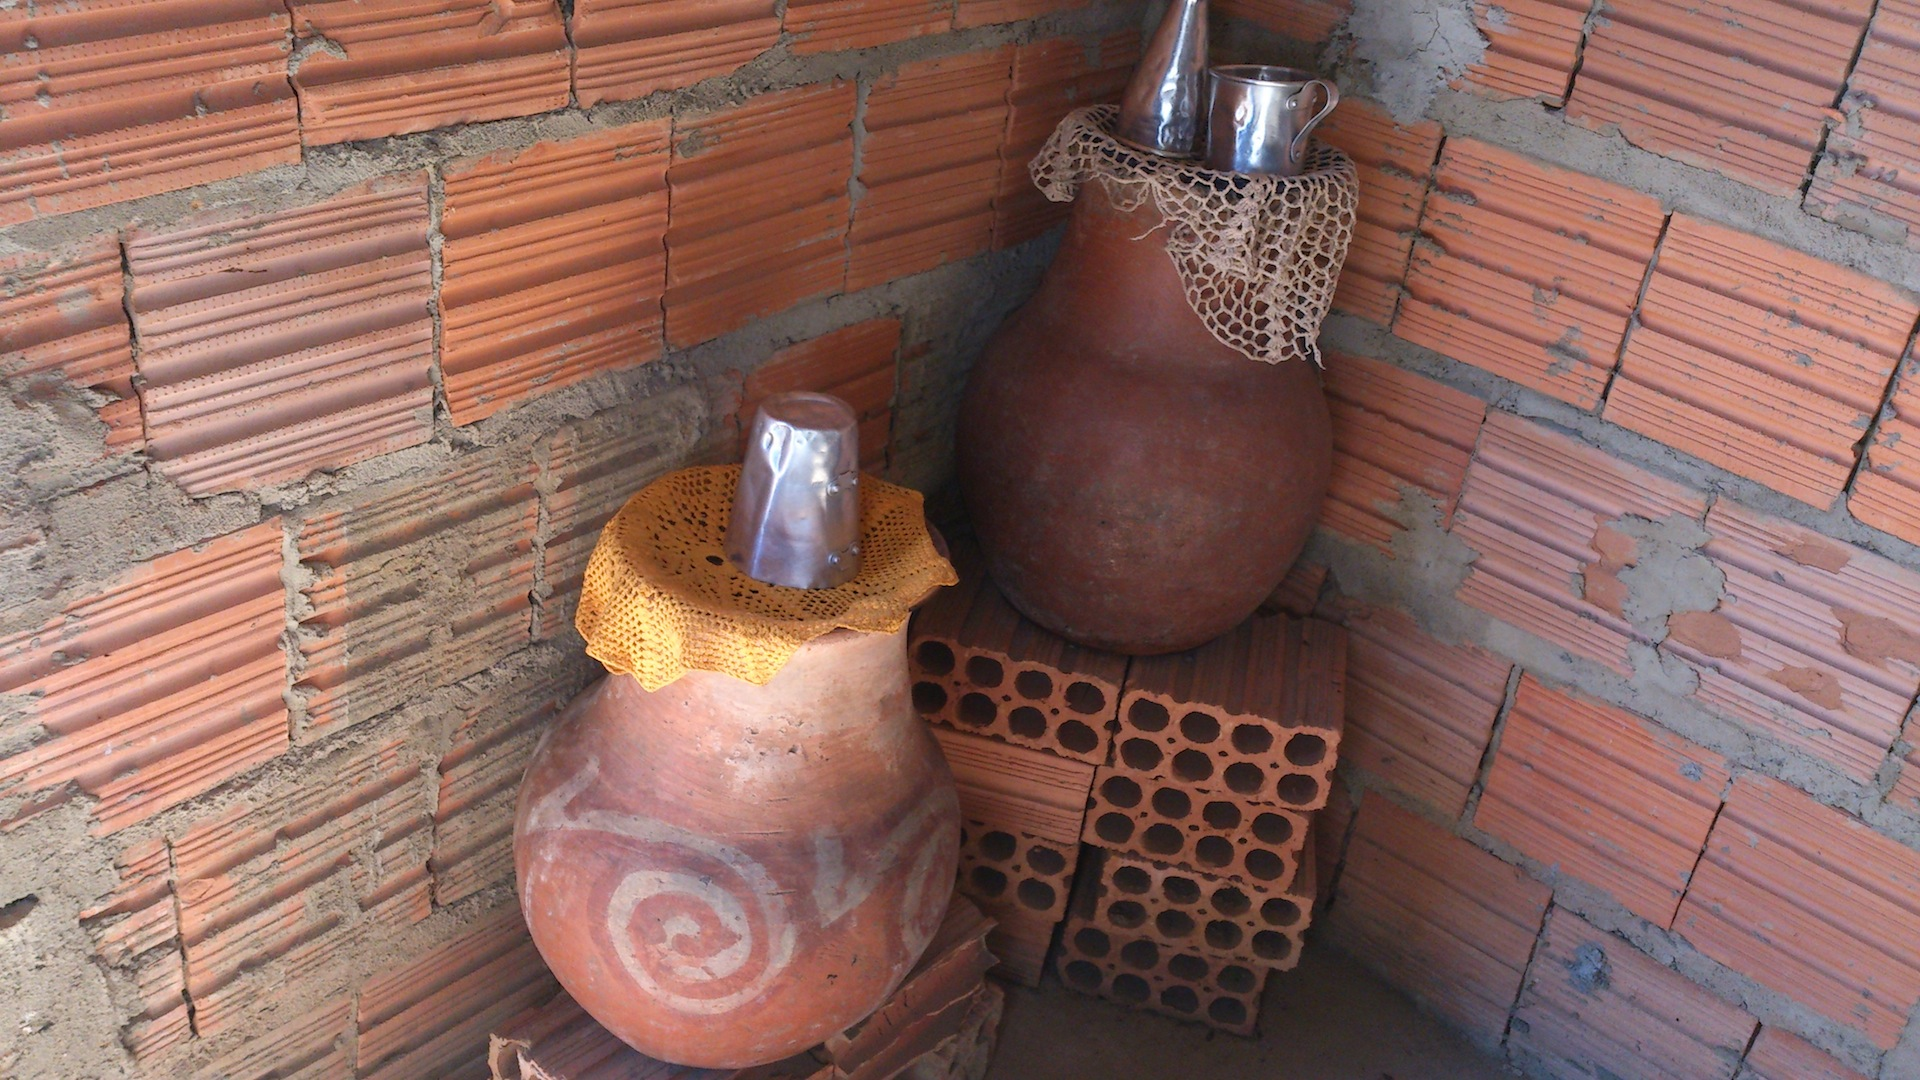 Clay pots for water storage, Lagedo community, São Francisco, MG